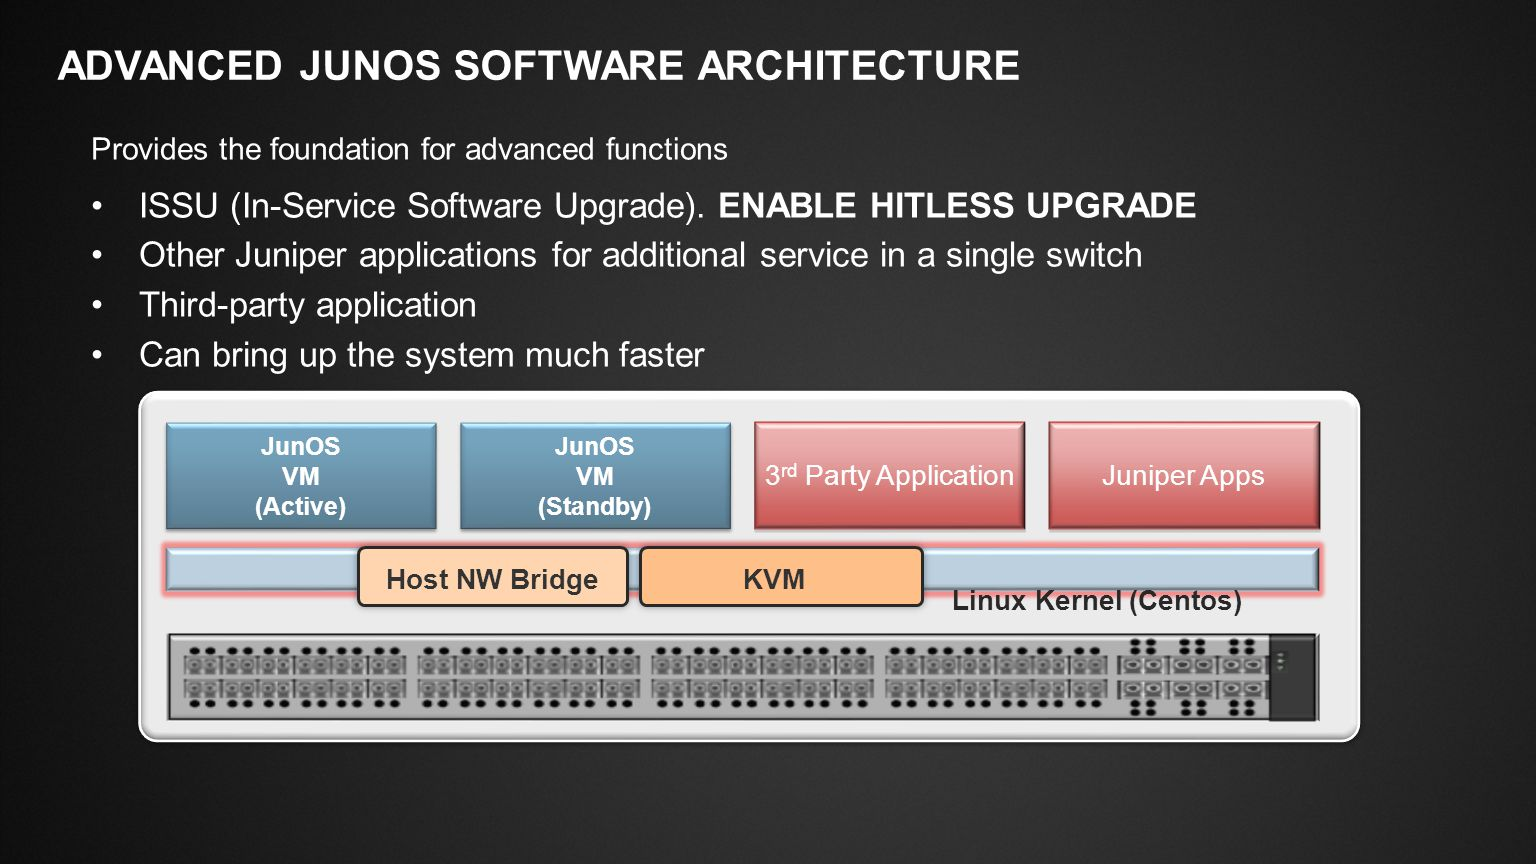 Slide Type Juniper Networks Large Venue Template / 16x9 / V6 Junos VM (Master) Junos VM (Backup)Junos VM (Master) QFX5100 HITLESS OPERATIONS DRAMATICALLY REDUCES MAINTENANCE WINDOWS Network Resiliency Network Performance QFX5100 Topology- Independent ISSU Competitive ISSU Approaches Data Center Efficiency During Switch Software Upgrade High-Level QFX5100 Architecture x86 HardwareBroadcom Trident II Kernal Based Virtual Machines Broadcom Trident II PFE Linux Kernel F l e x i b l e H i t l e s s Simple Benefits: Seamless Upgrad e No Traffic Loss No Performance impact No resilient risk No port flap